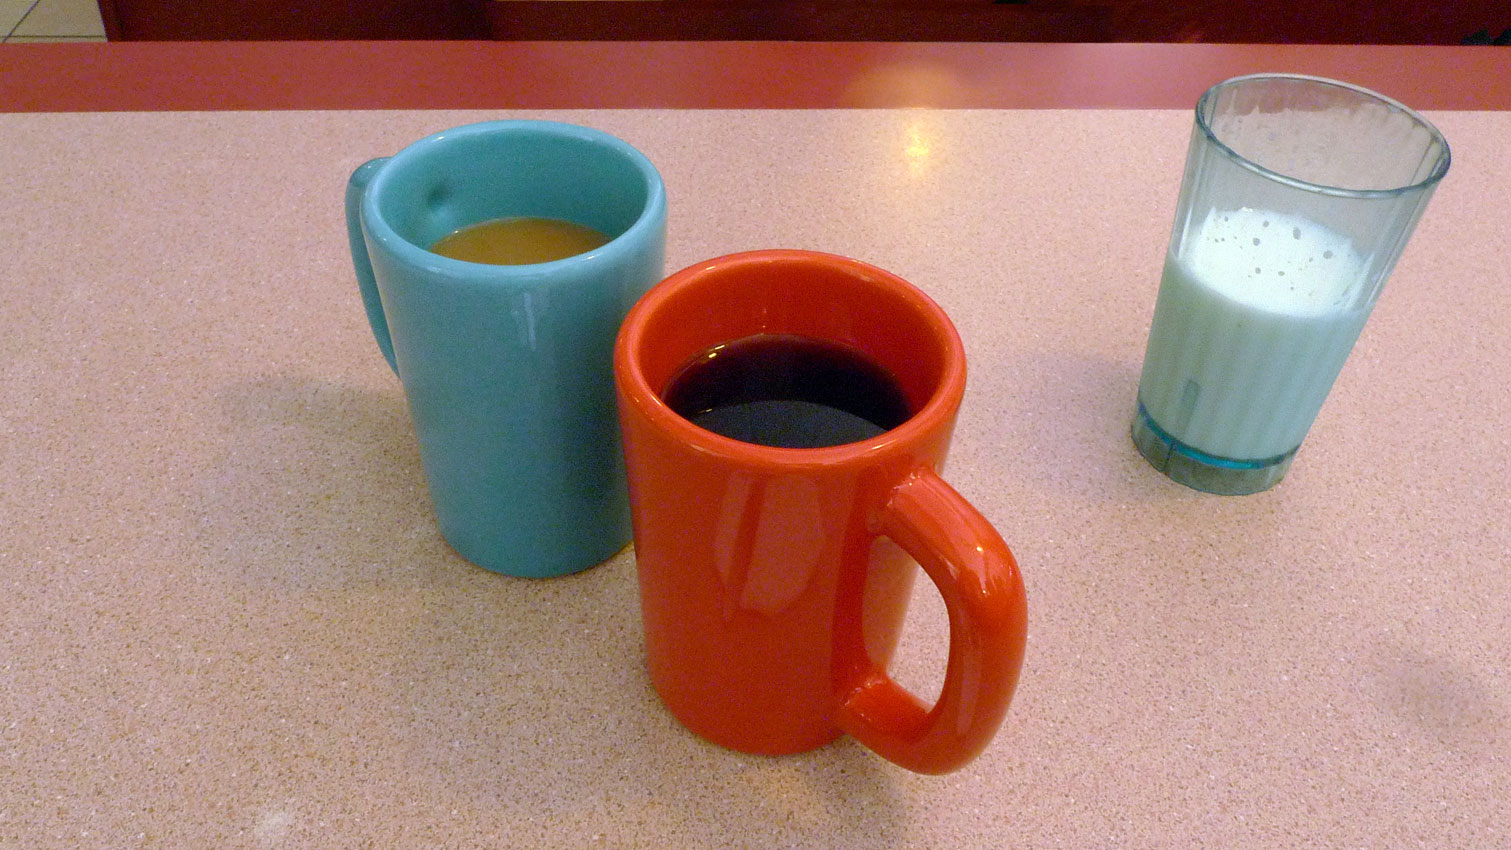 Coffee at Earl's, Gallup NM